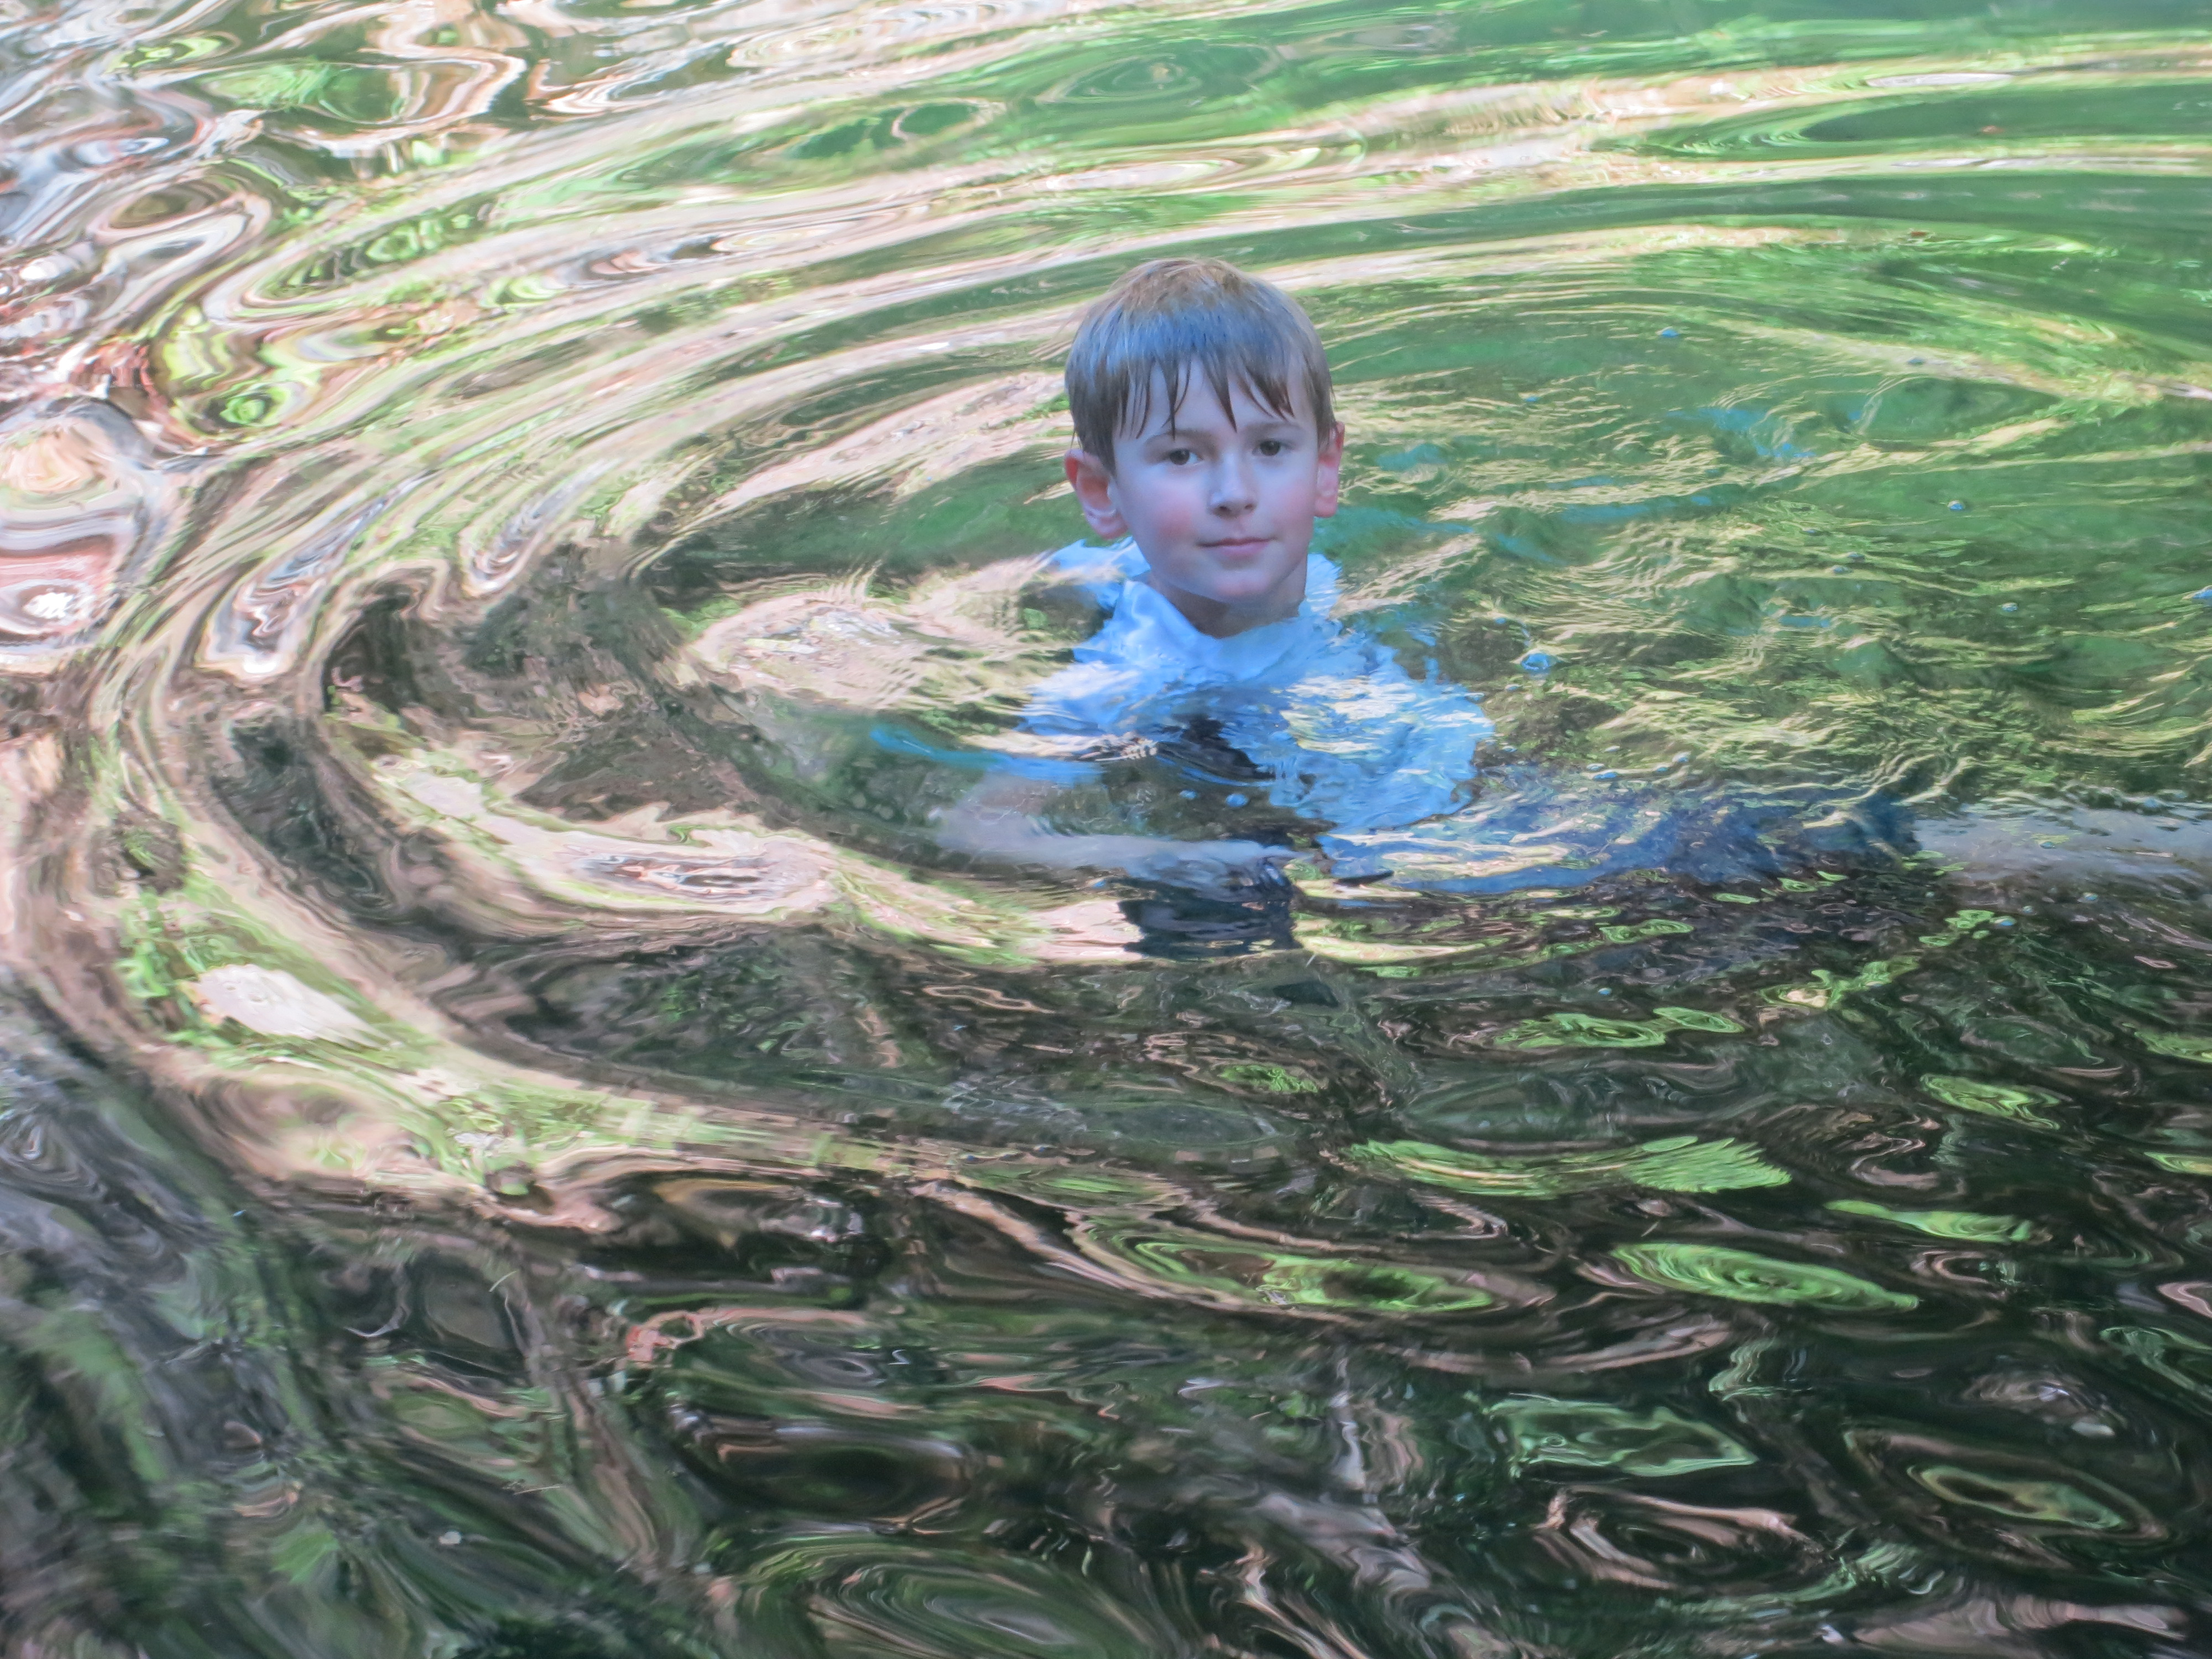 Our grandson Ethan enjoys a dip in the Applegate River this summer a few miles from our house .